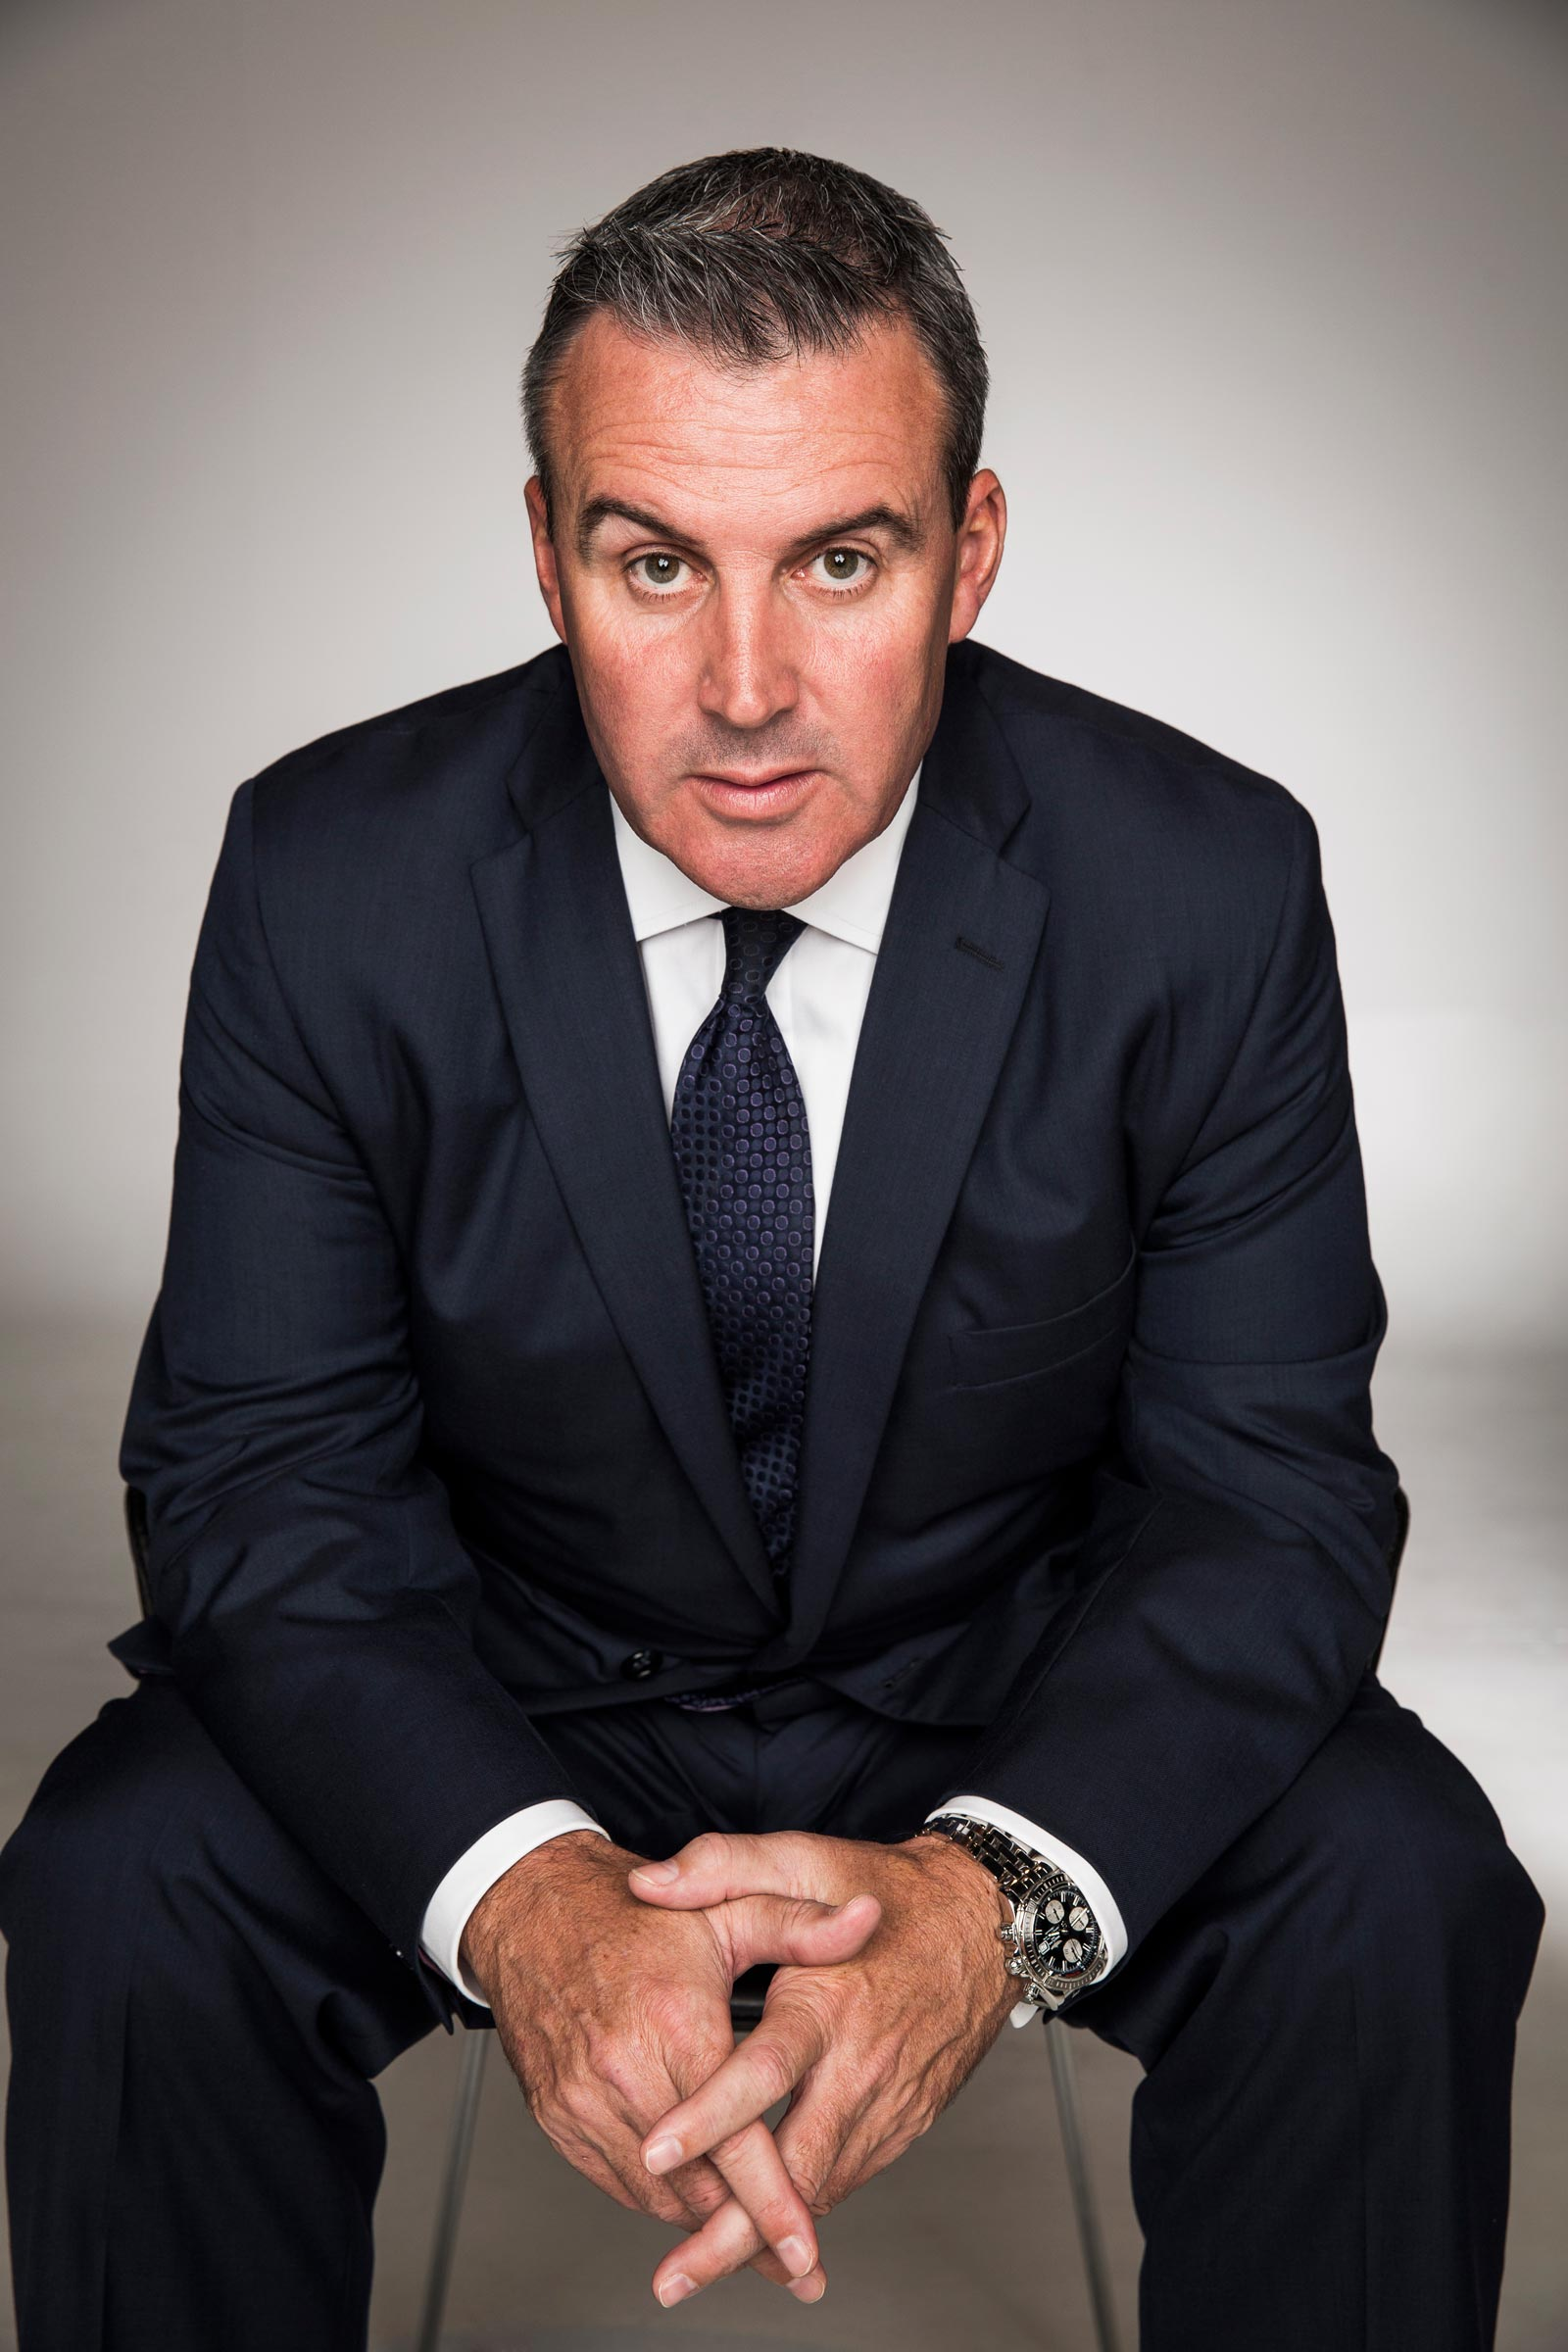 Male corporate portrait sitting on chair in blue suit